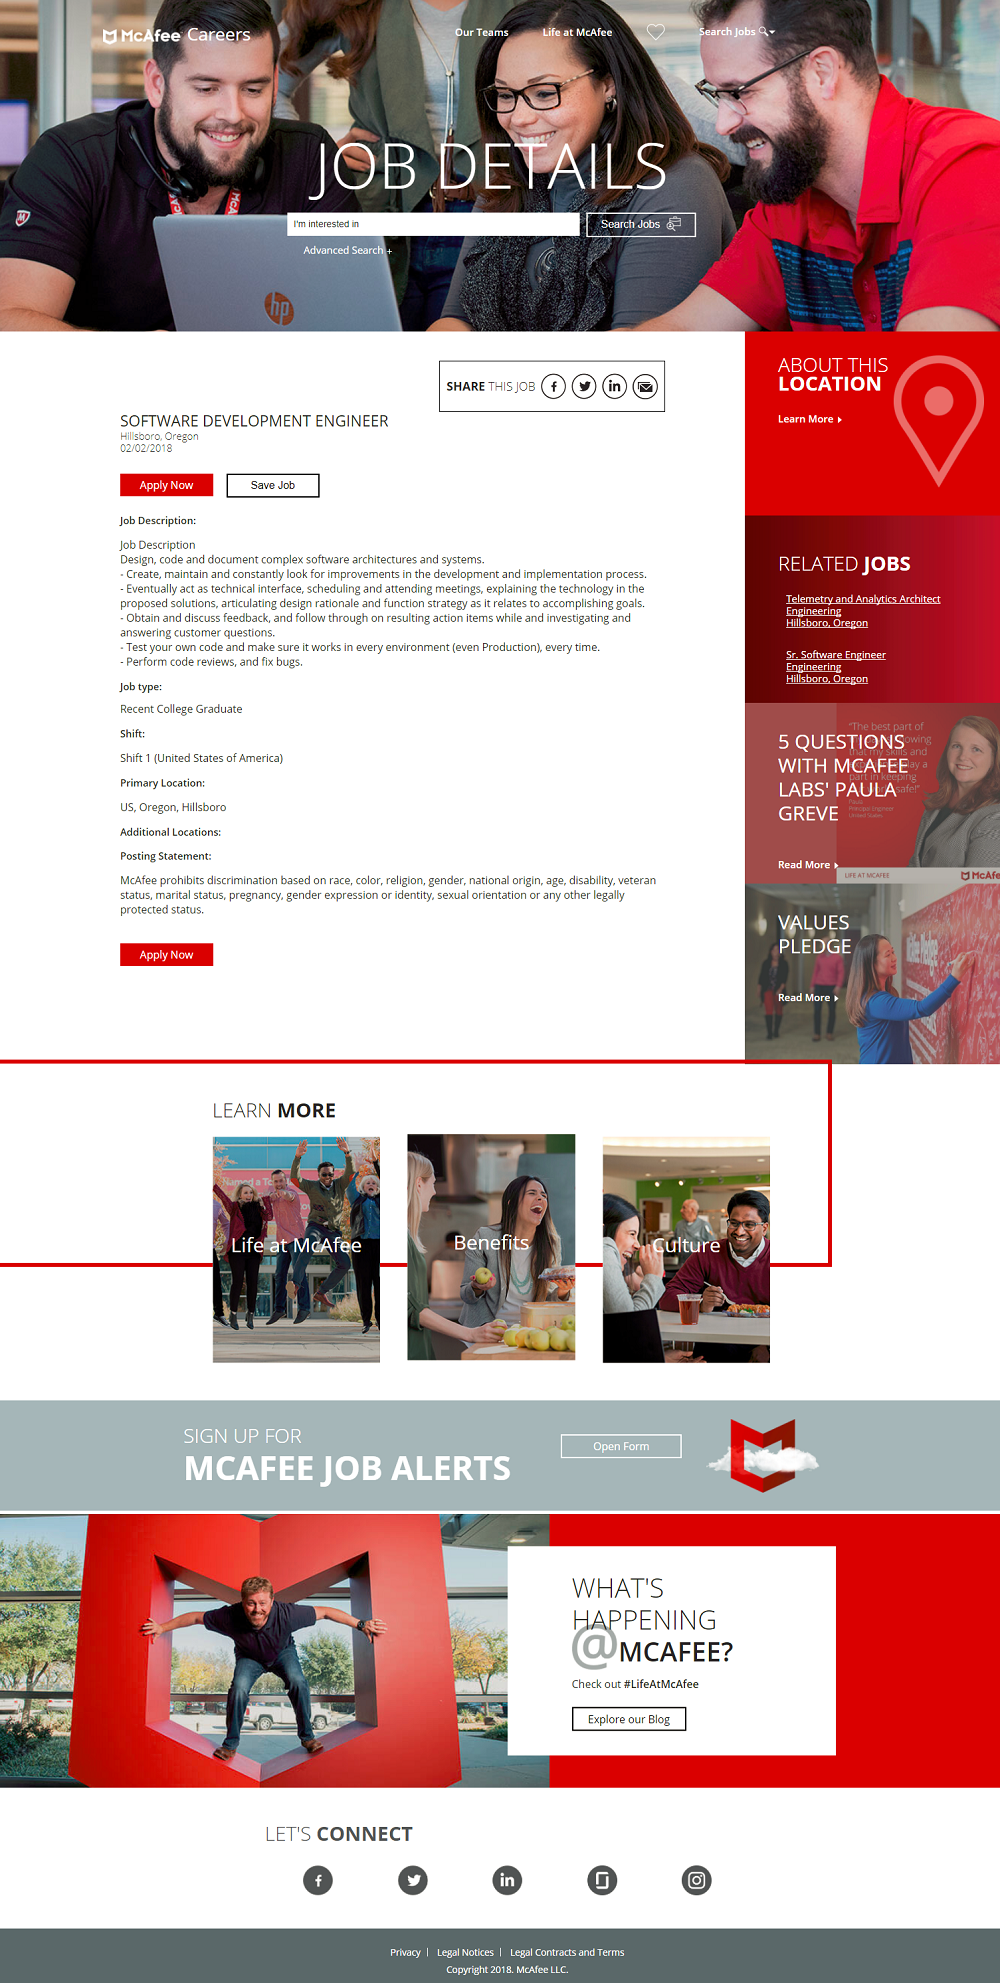 Workday ATS Job Page Overlays - McAfee